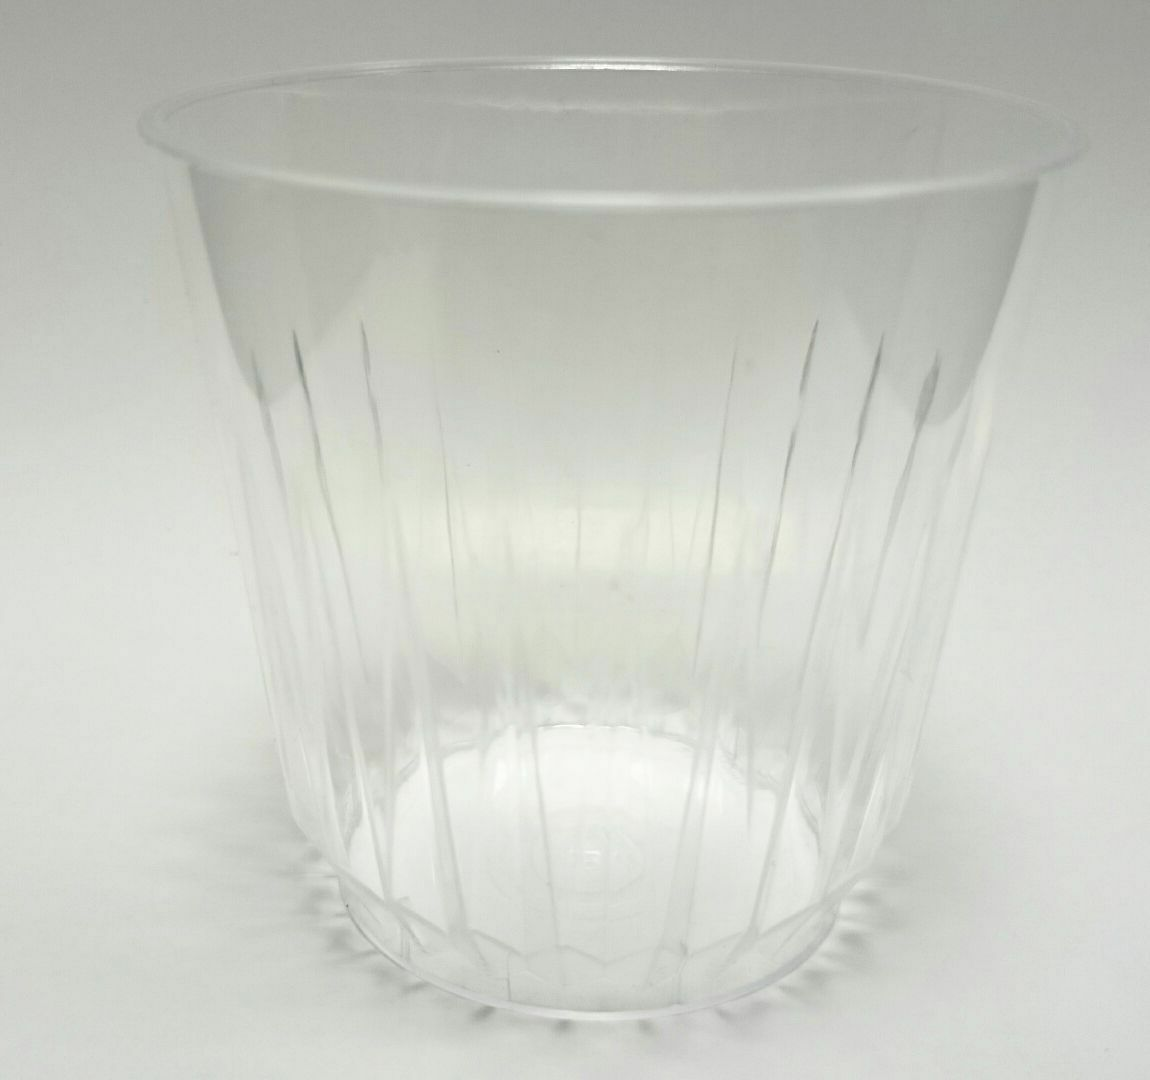 700 9oz plastique transparent solide crystal mélangeur verres jetables jus vin whisky